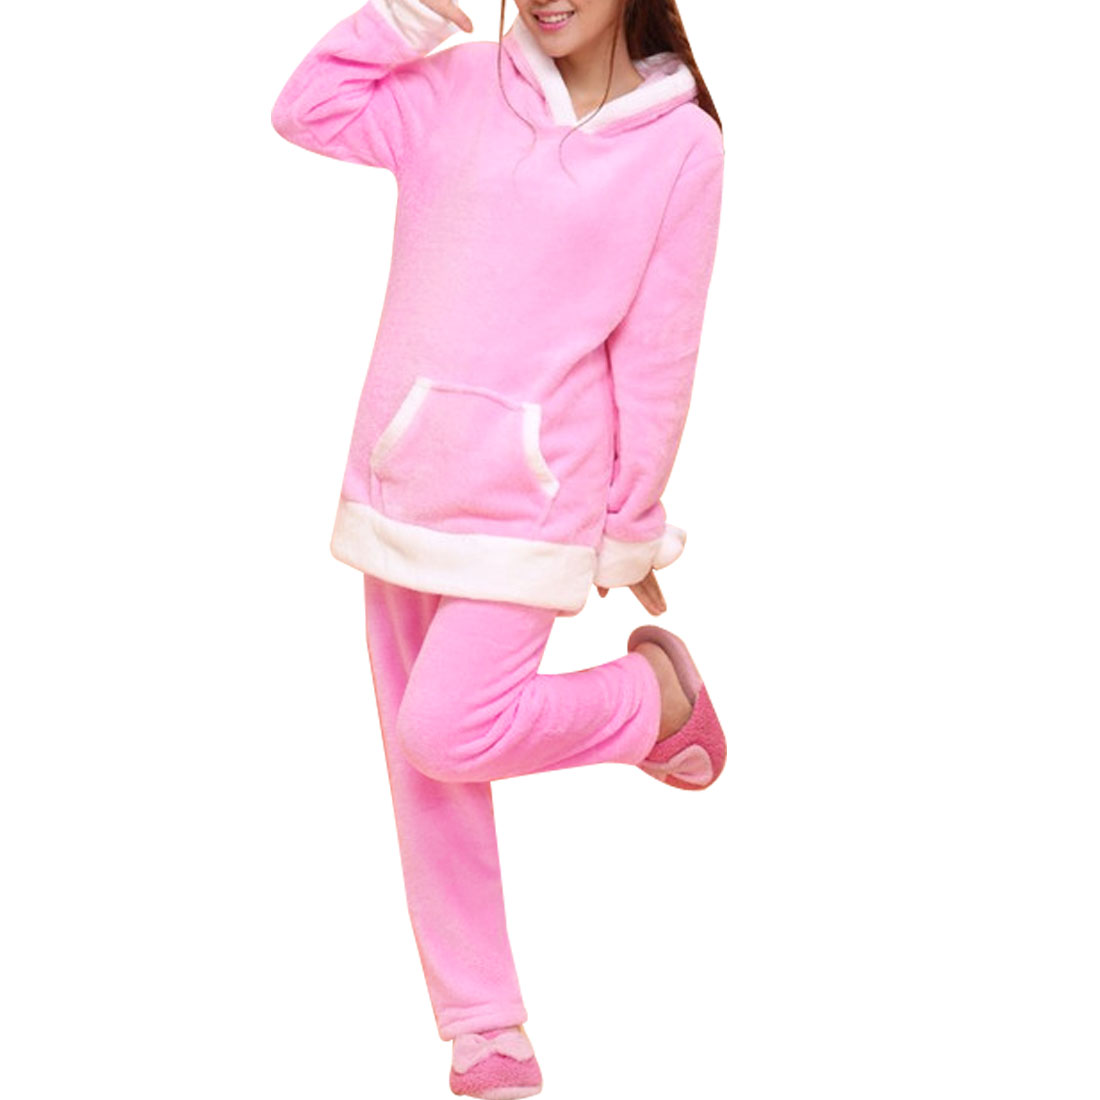 Winter Warm Long Sleeve Hooded Top w Elastic Waist Pants M Pink White for Woman